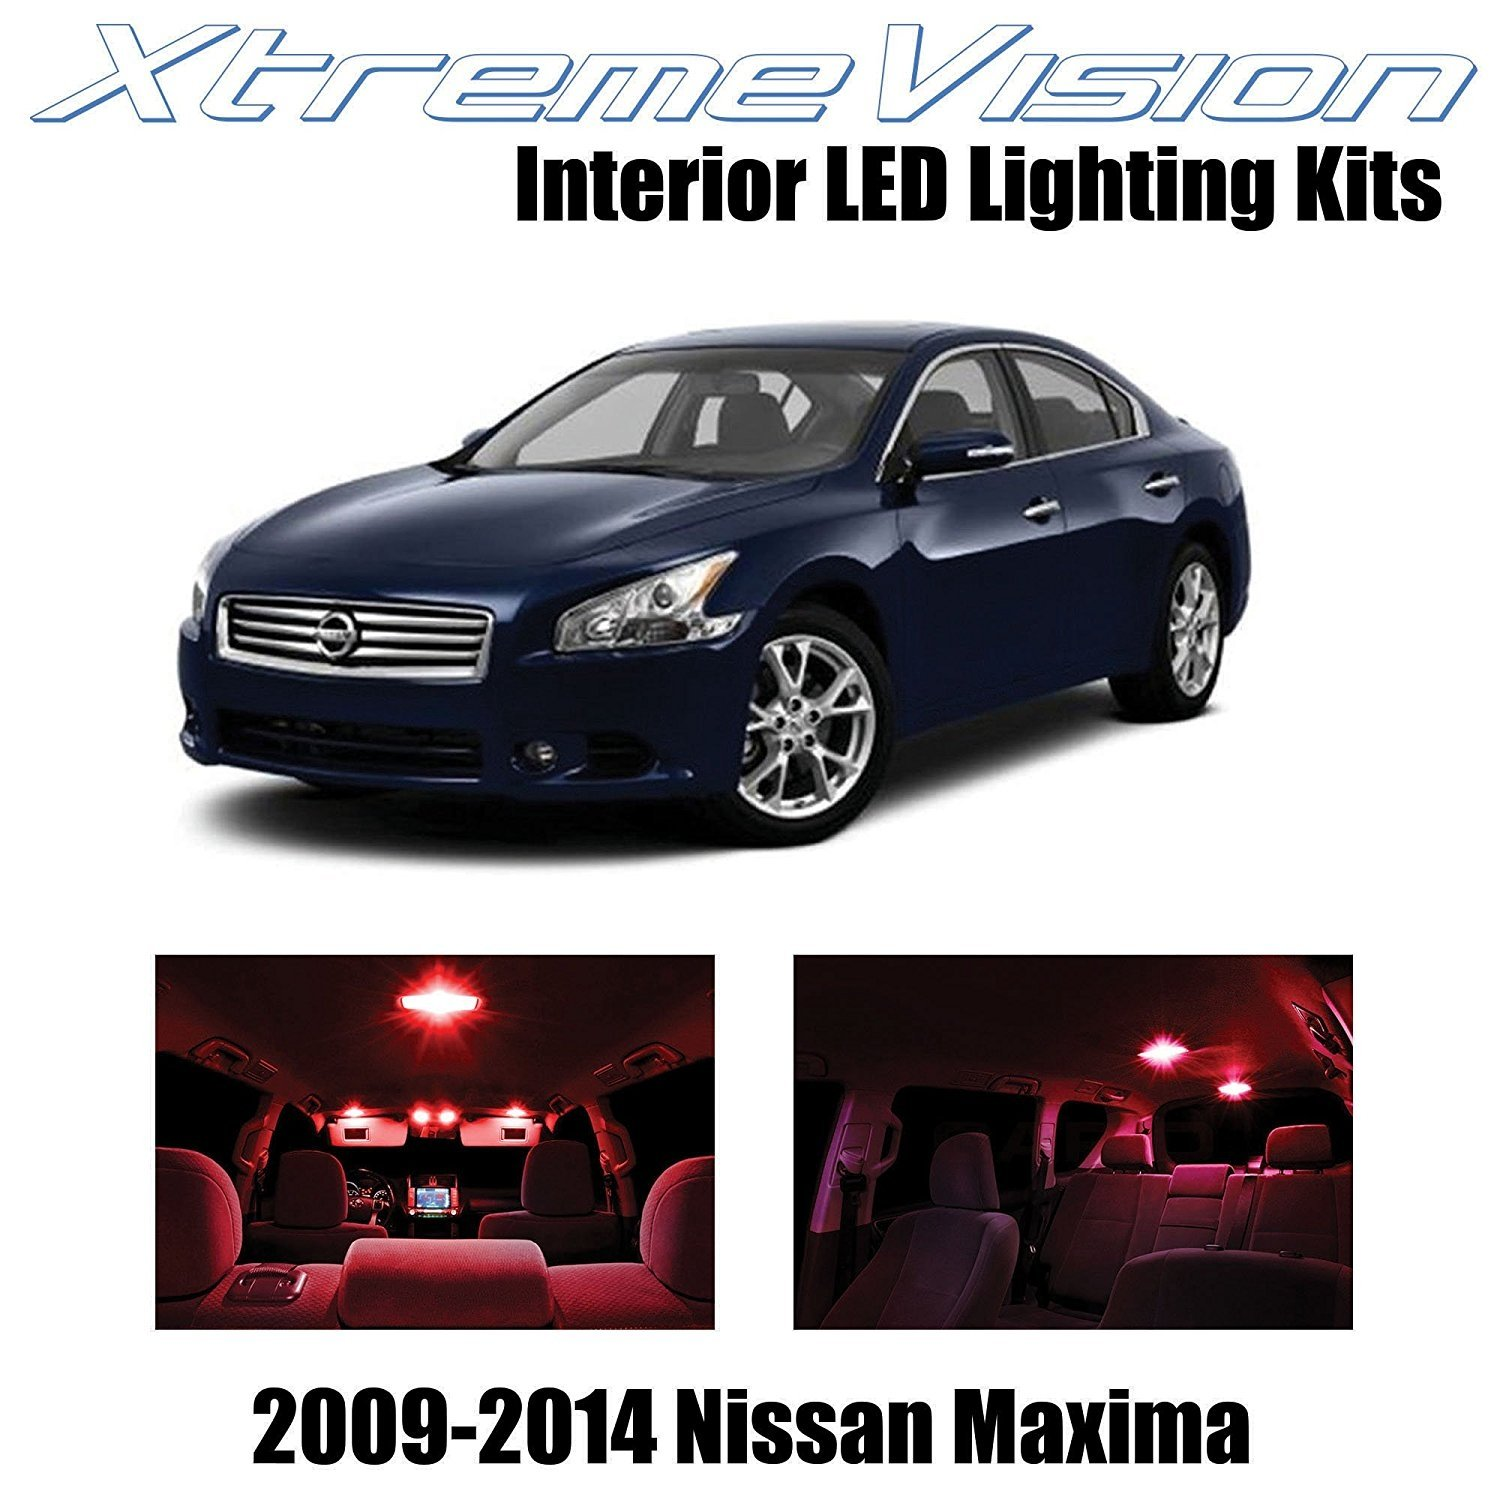 XtremeVision LED for Nissan Maxima 2009-2014 (14 Pieces) Red Premium Interior LED Kit Package + Installation Tool Tool